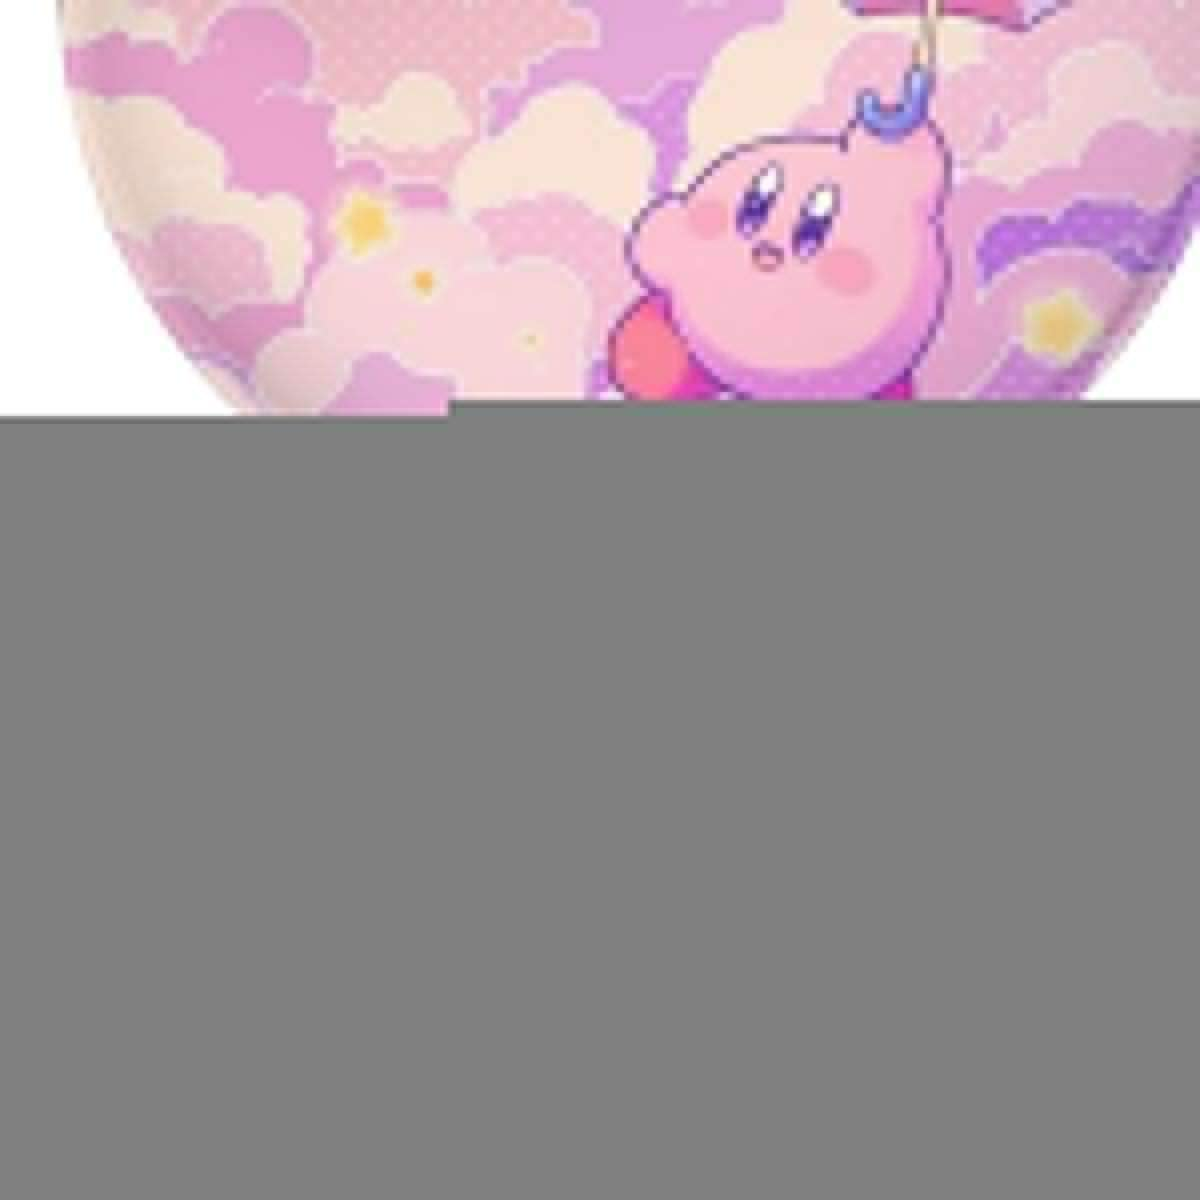 Kirby-Cartoon Unisex Child Adult Round Rubber Mouse Pad 7.9x7.9 in Non-Slip Desktop Working Mouse Mat Laptop Computer PC Mousepad for Home//Office//Gaming